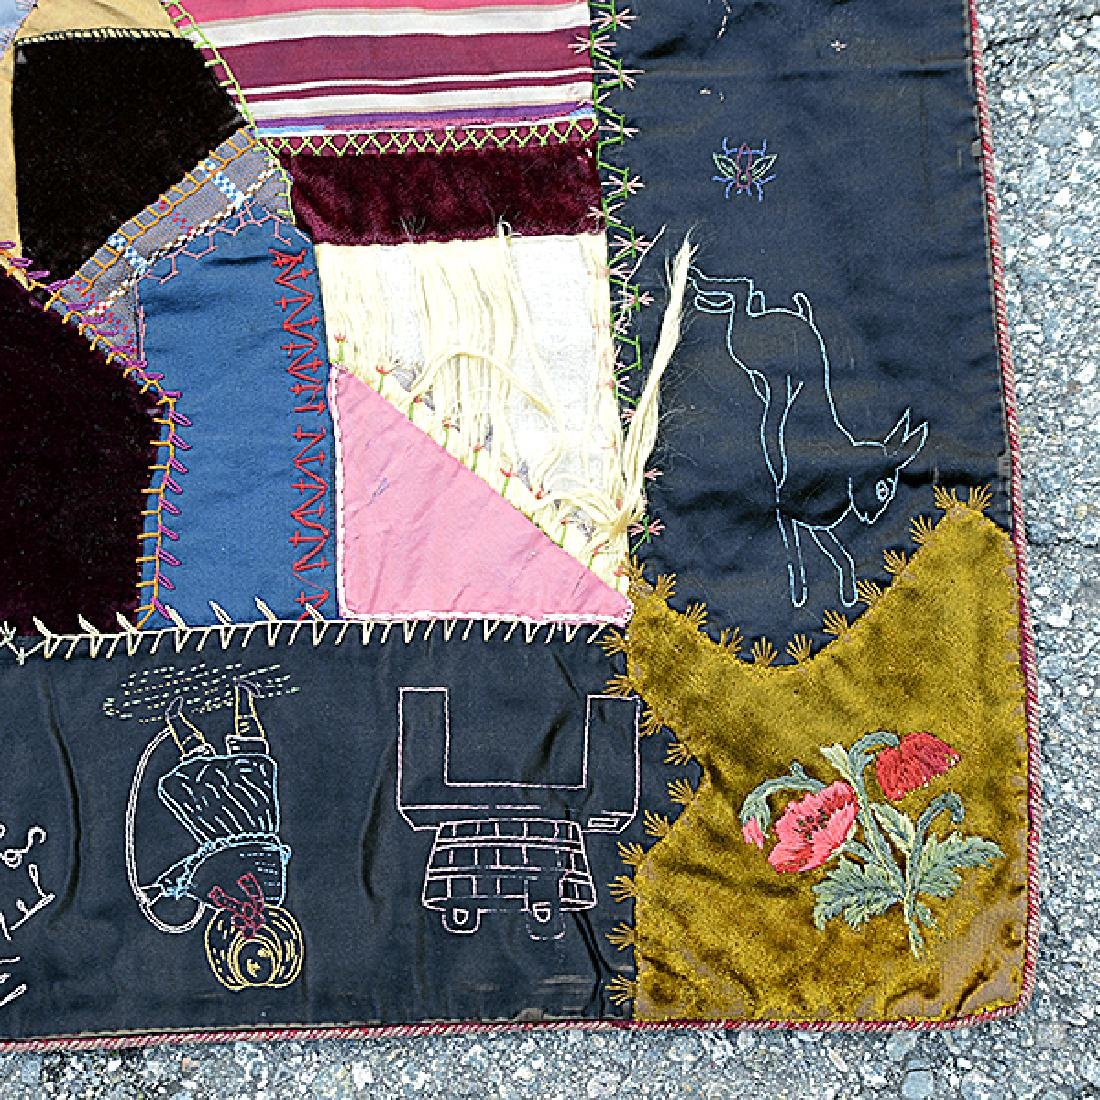 American Crazy Quilt with Embroidered Figural Border - 2